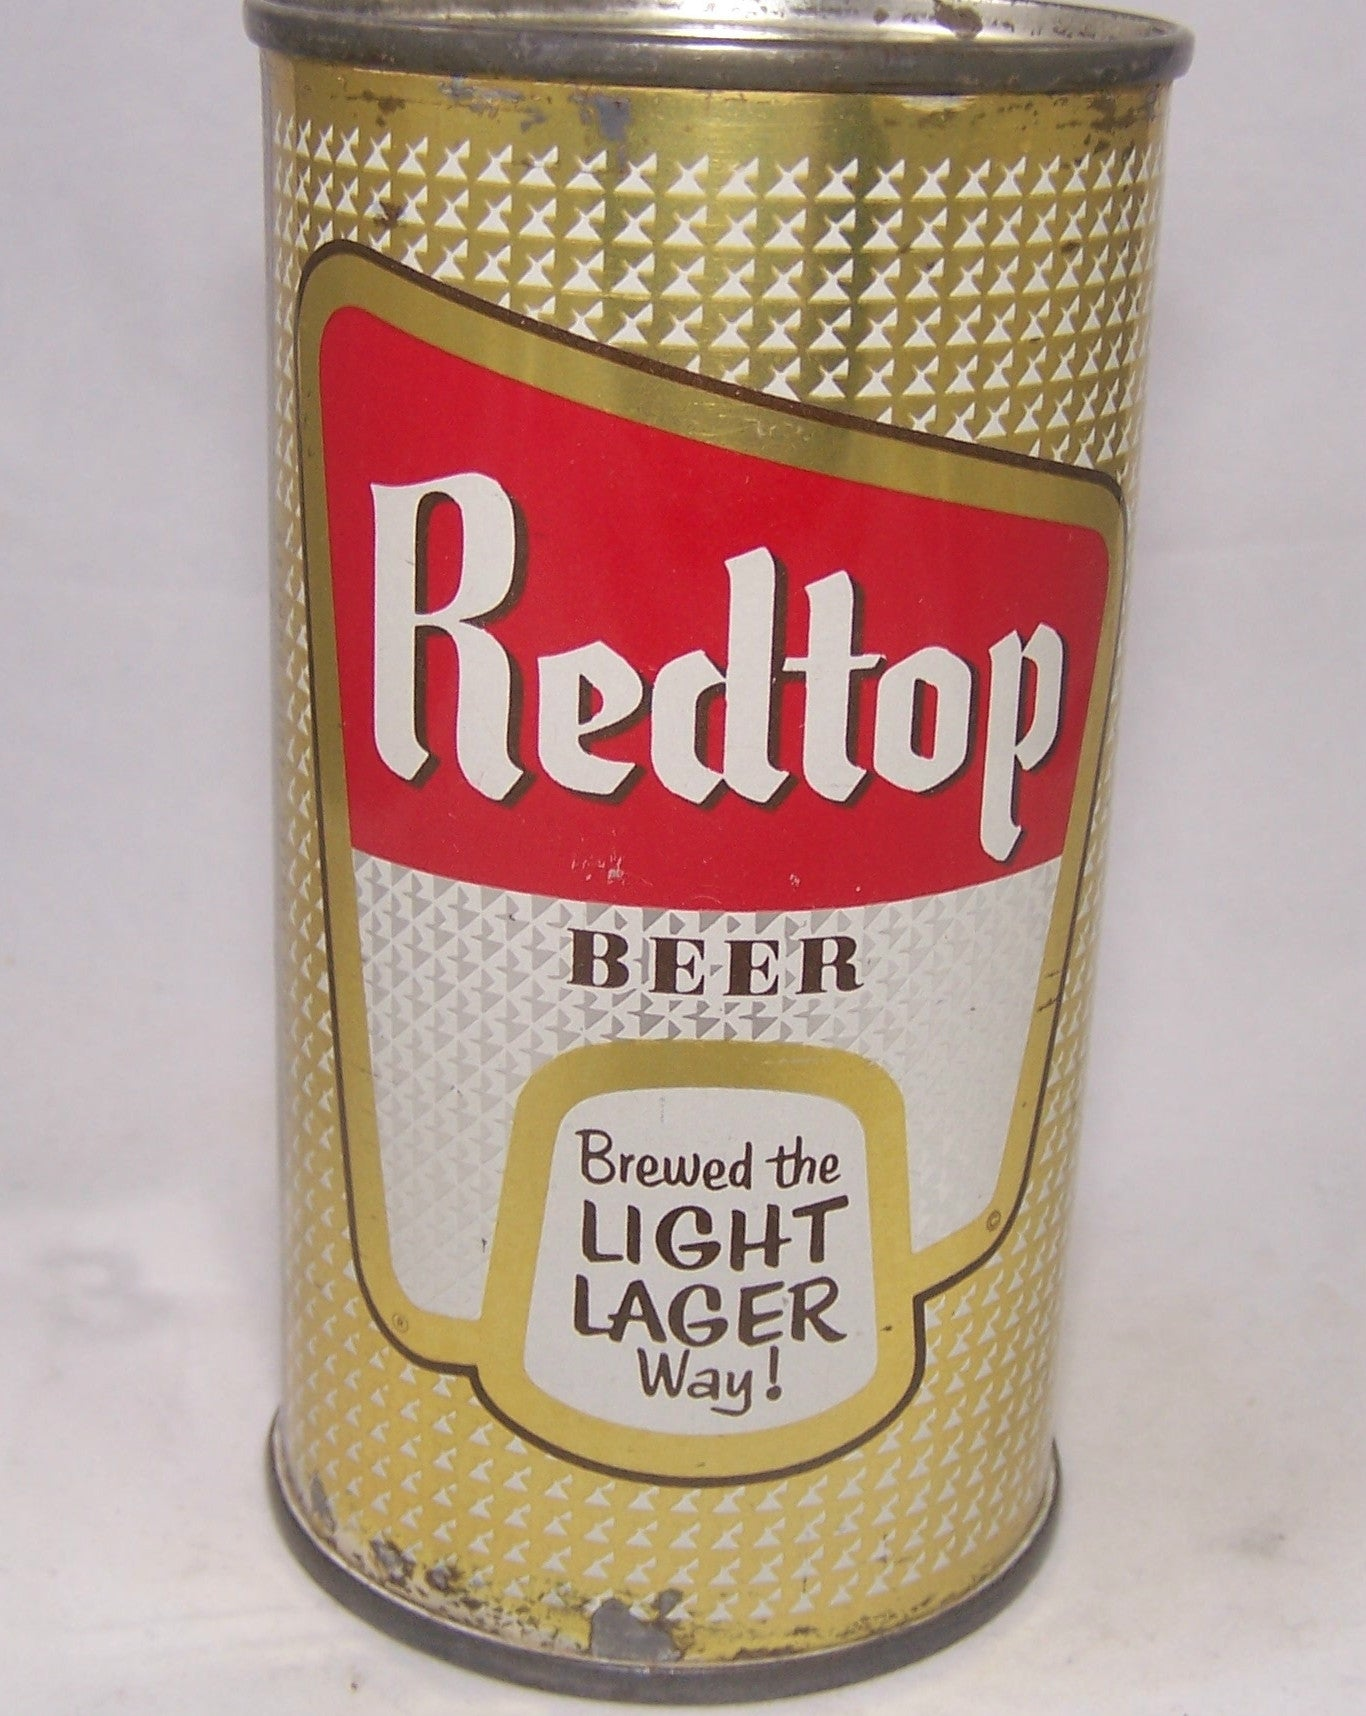 Redtop Beer (Brewed the Light Lager way) USBC 120-22, Grade 1 Sold on 09/19/16